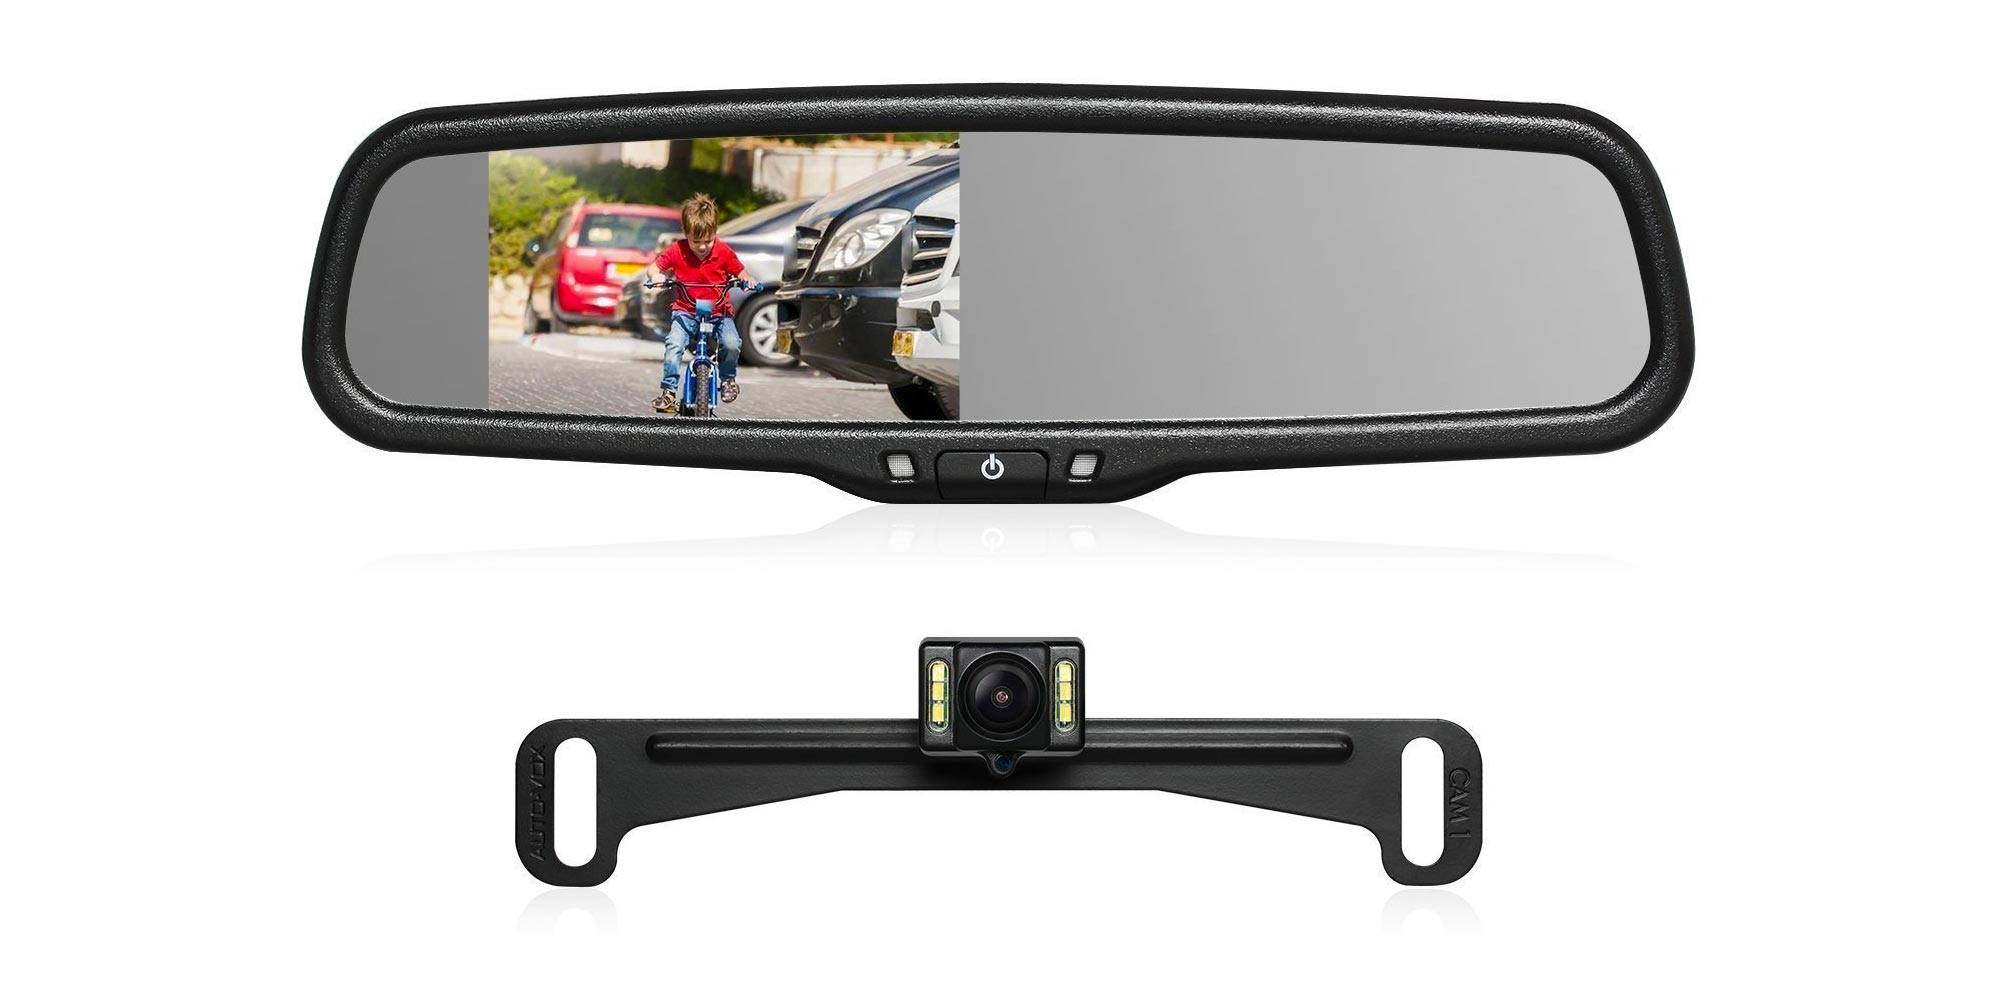 Put a backup camera in your rearview mirror w/ this highly-rated kit for $98 at Amazon (30% off)